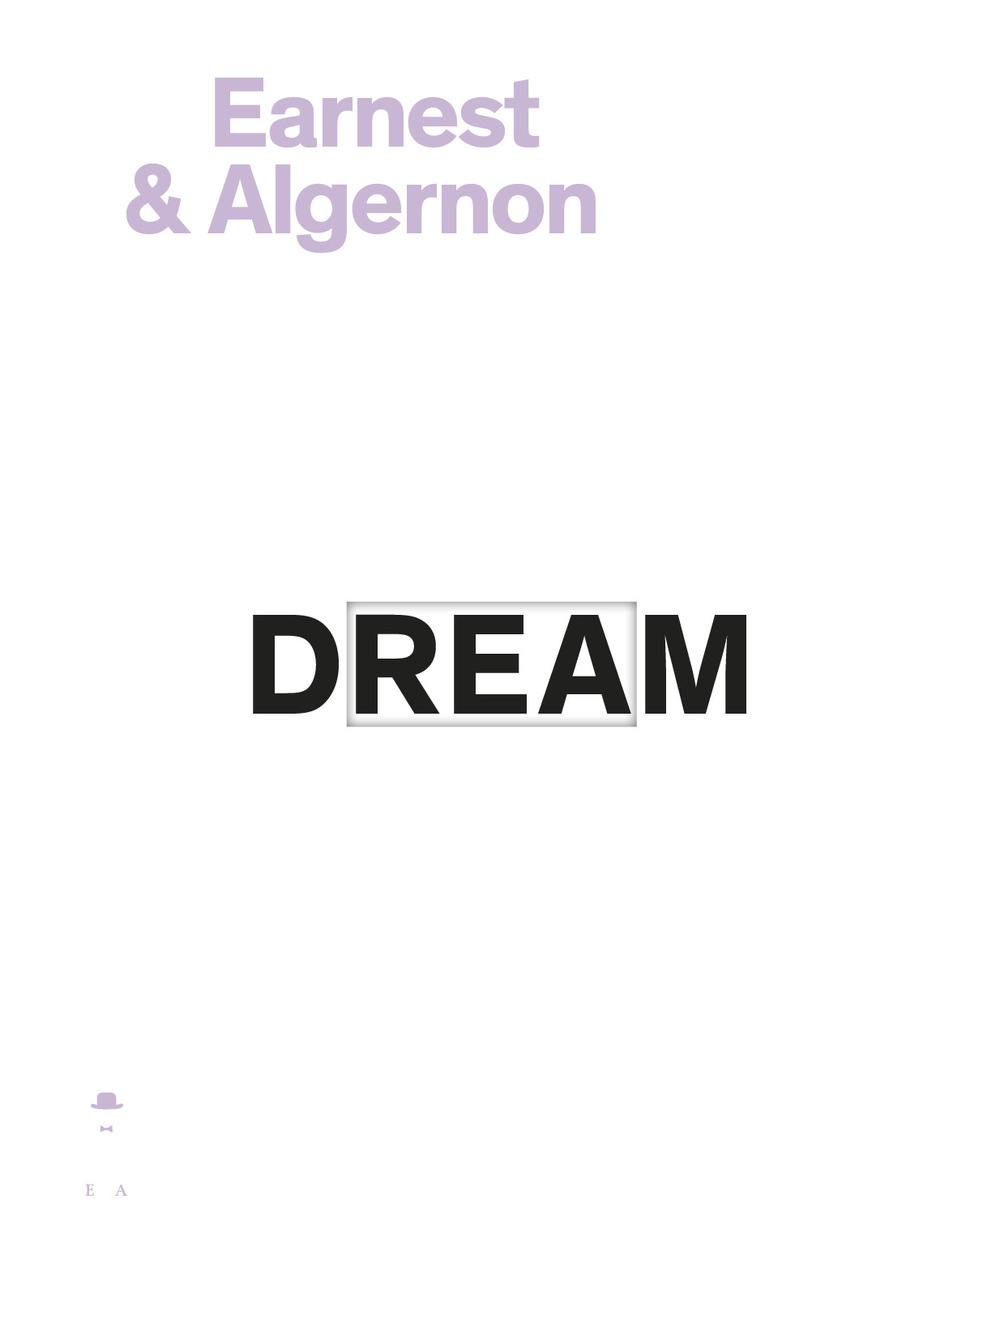 cover_earnest_algernon_dream.png